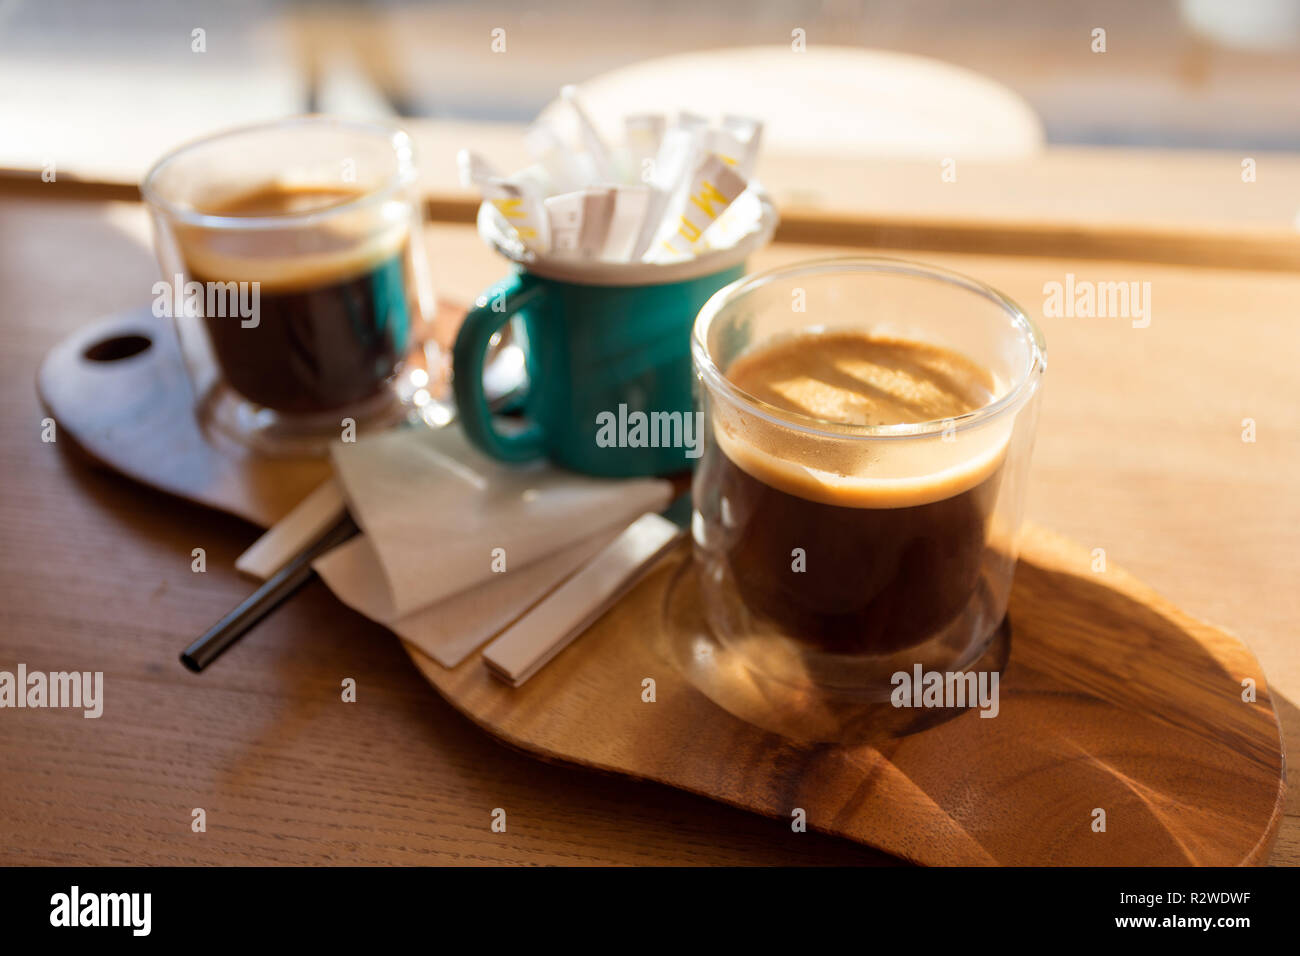 Wooden tray with two cups of coffee on the table in front of the window - Stock Image